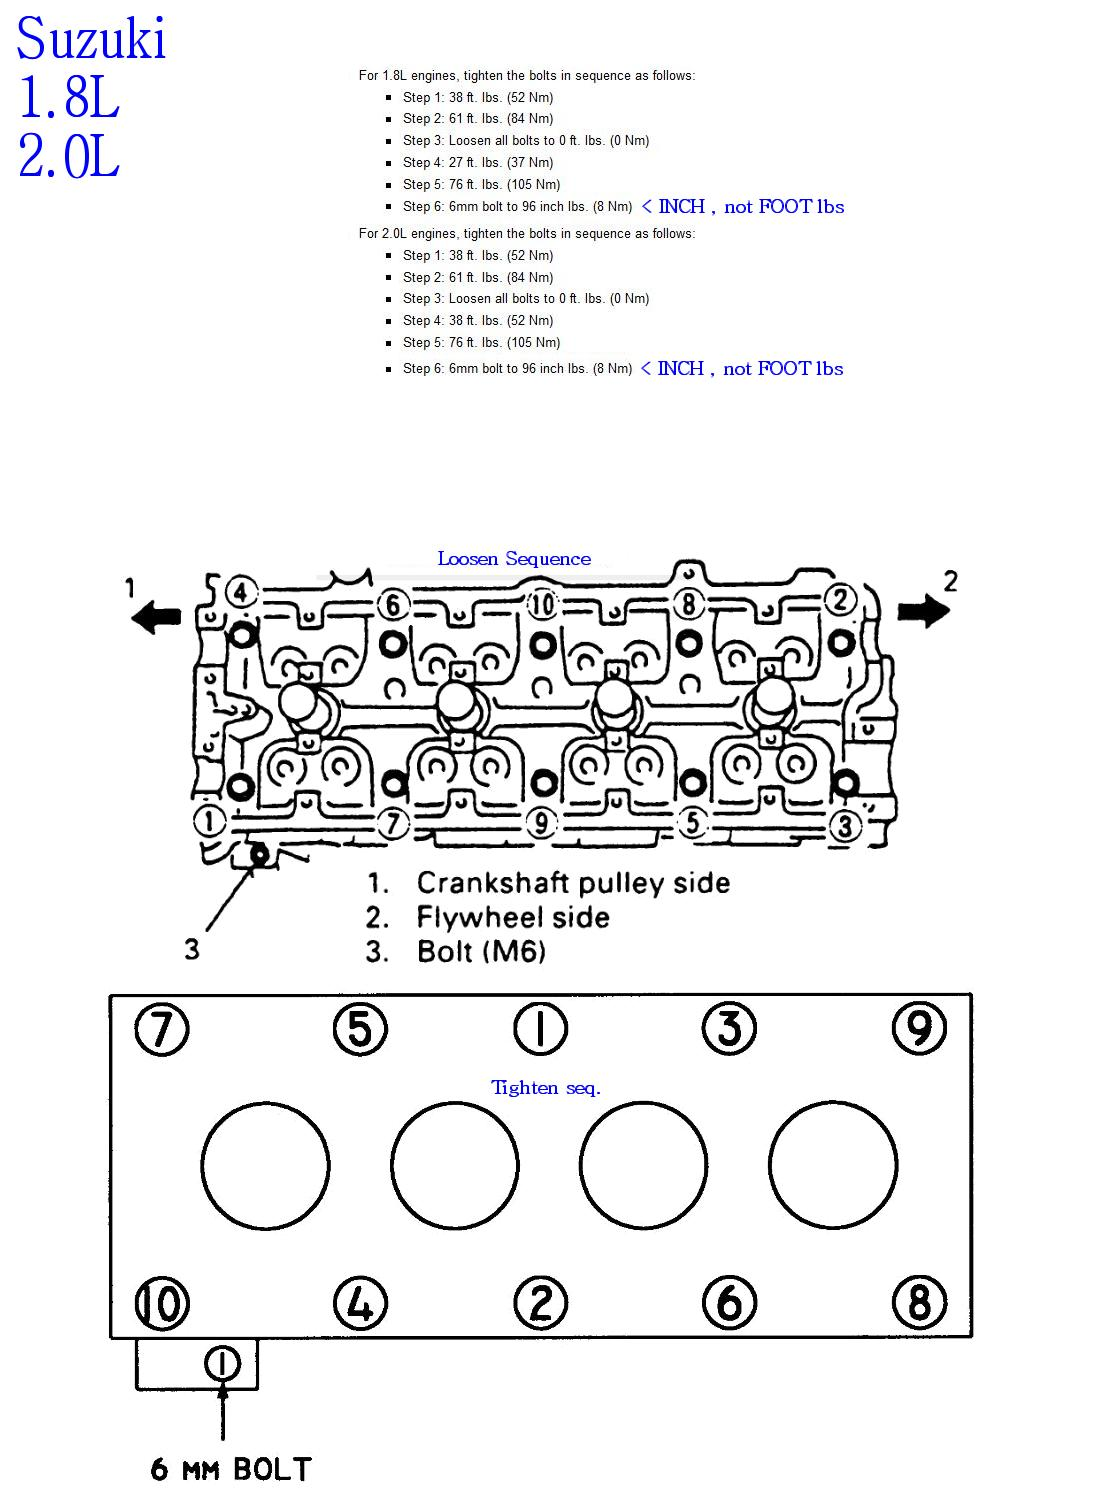 Lincoln Ls Engine Diagram Intake Manifold Water Leak also Dodge Shadow Fuse Box furthermore Wiring Diagram For 94 Geo Prizm Radio 1991 furthermore Geo Tracker Fuel Filter Location On 95 Prizm besides 97 Geo Metro Thermostat Location. on 1995 geo prizm fuse box diagram